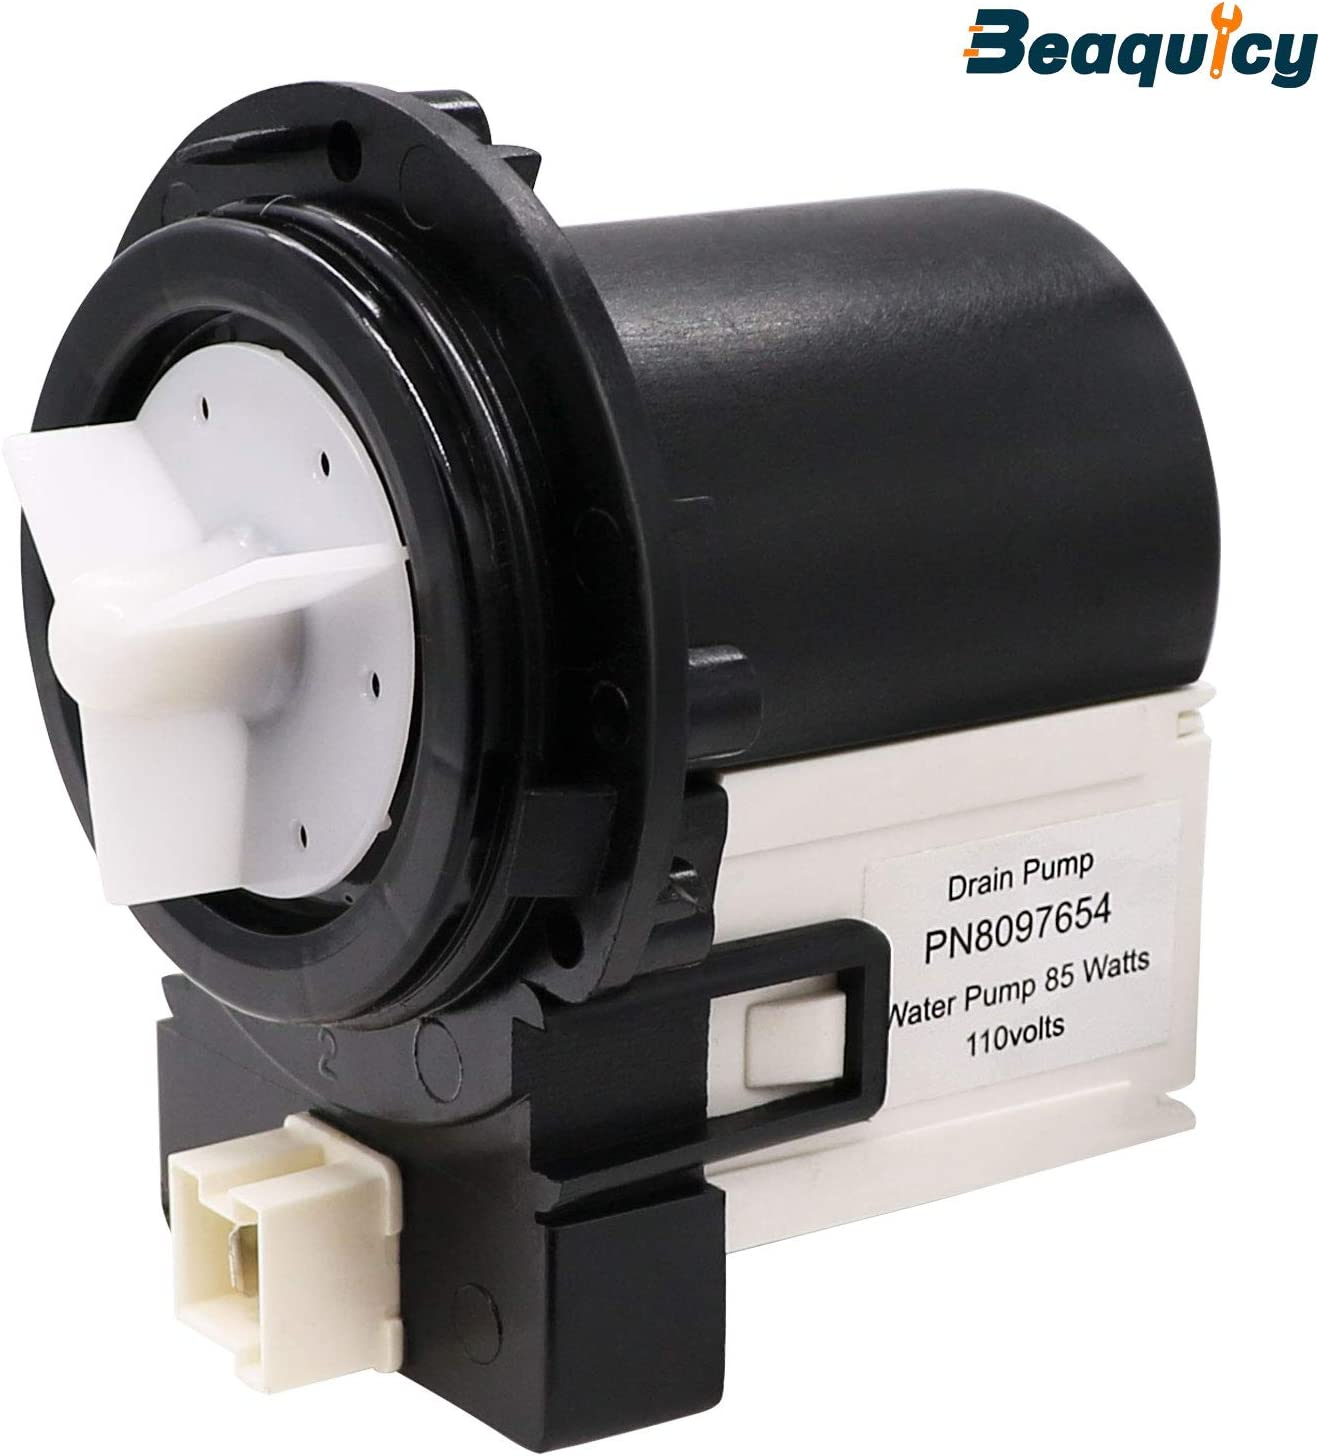 DC31-00054A Washer Drain Pump Water Motor Assembly (85 Watts 110 Volts) by Beaquicy - Replacement for Kenmore Samsung Washing machine